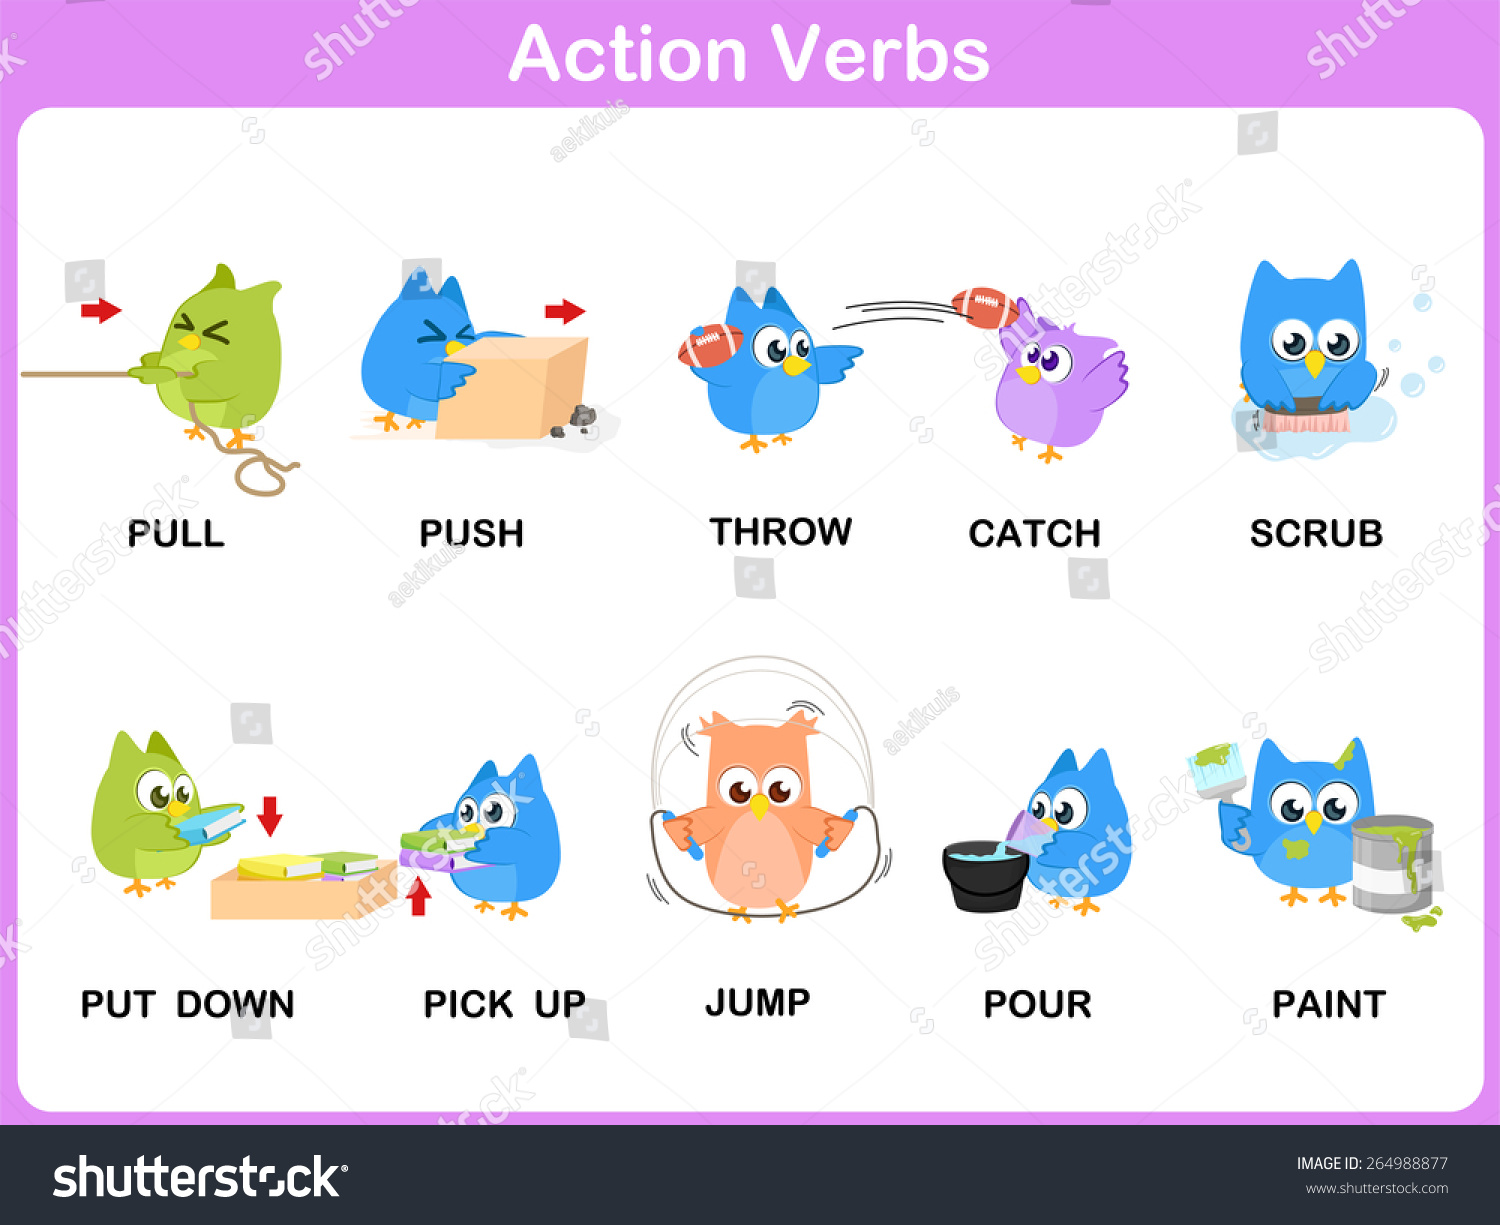 royaltyfree action verbs picture dictionary � 264988877